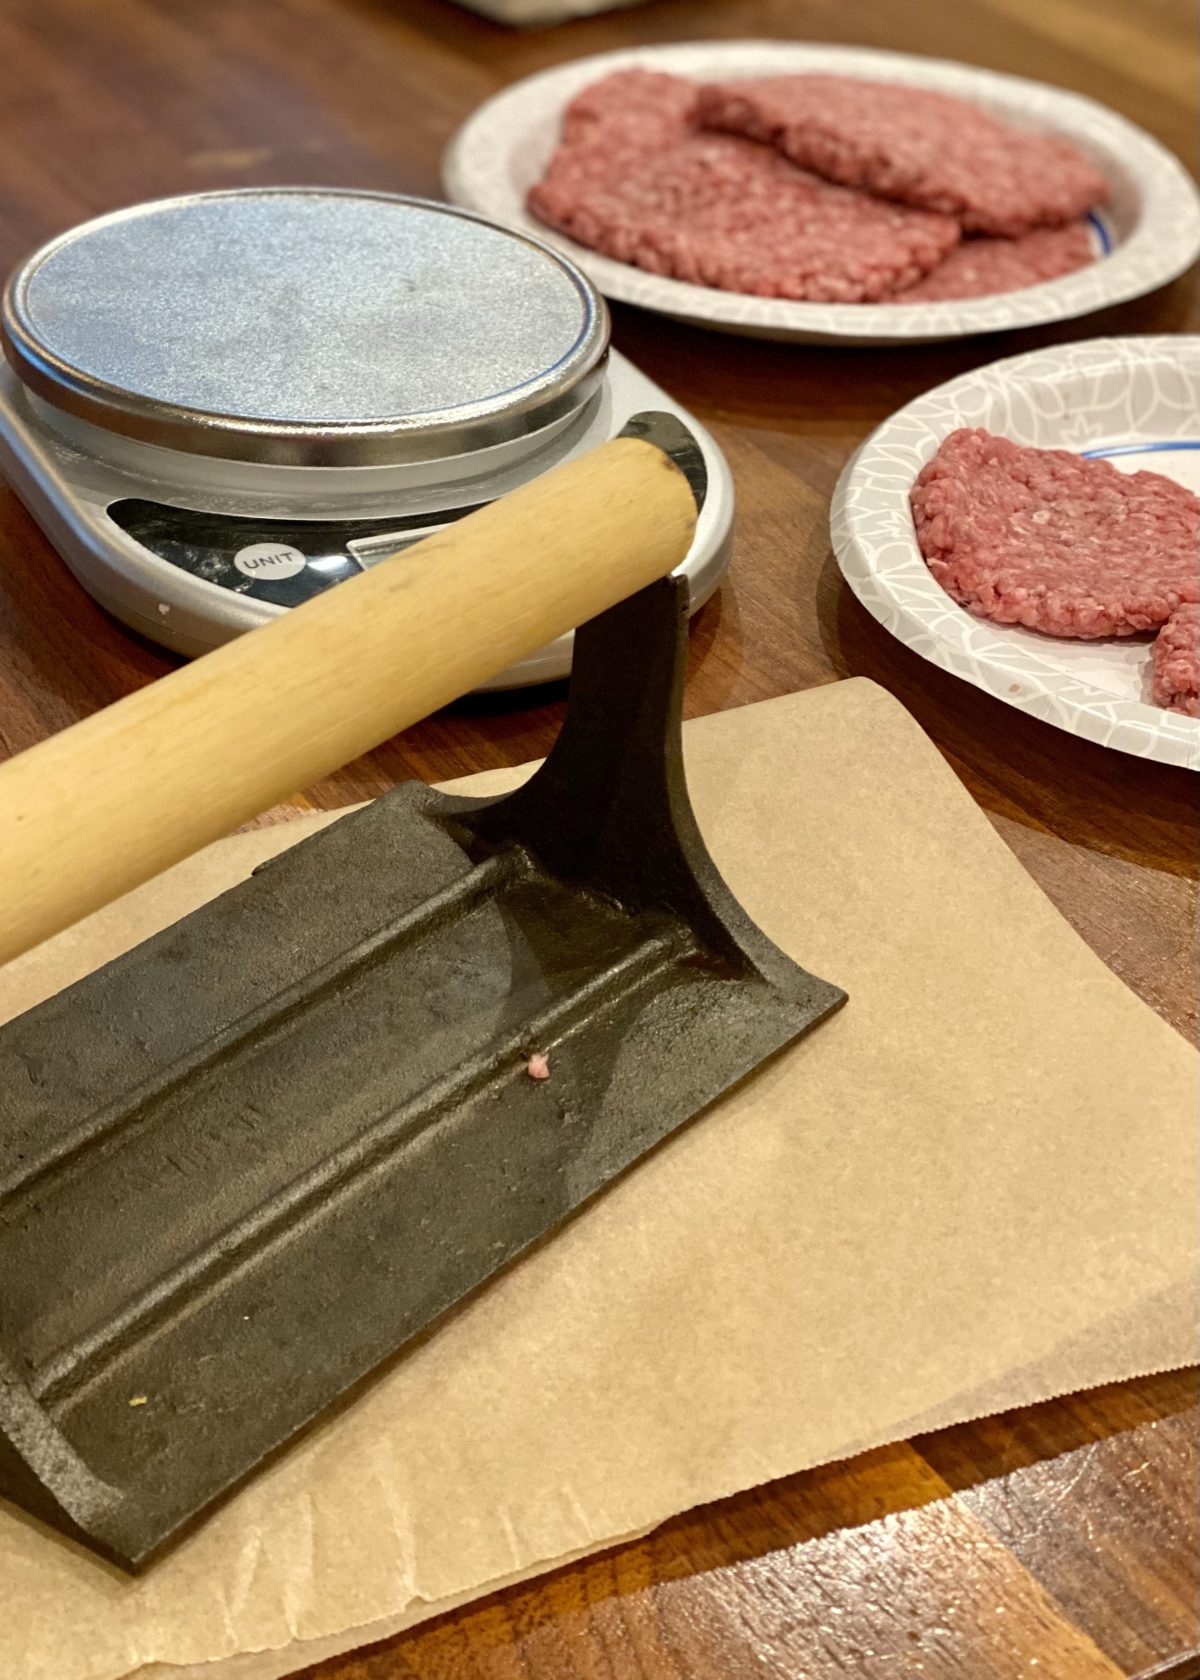 Making smashed all beef burger patties by using parchment paper and a bacon press. Shown with a scale and burgers on a paper plate in the background.